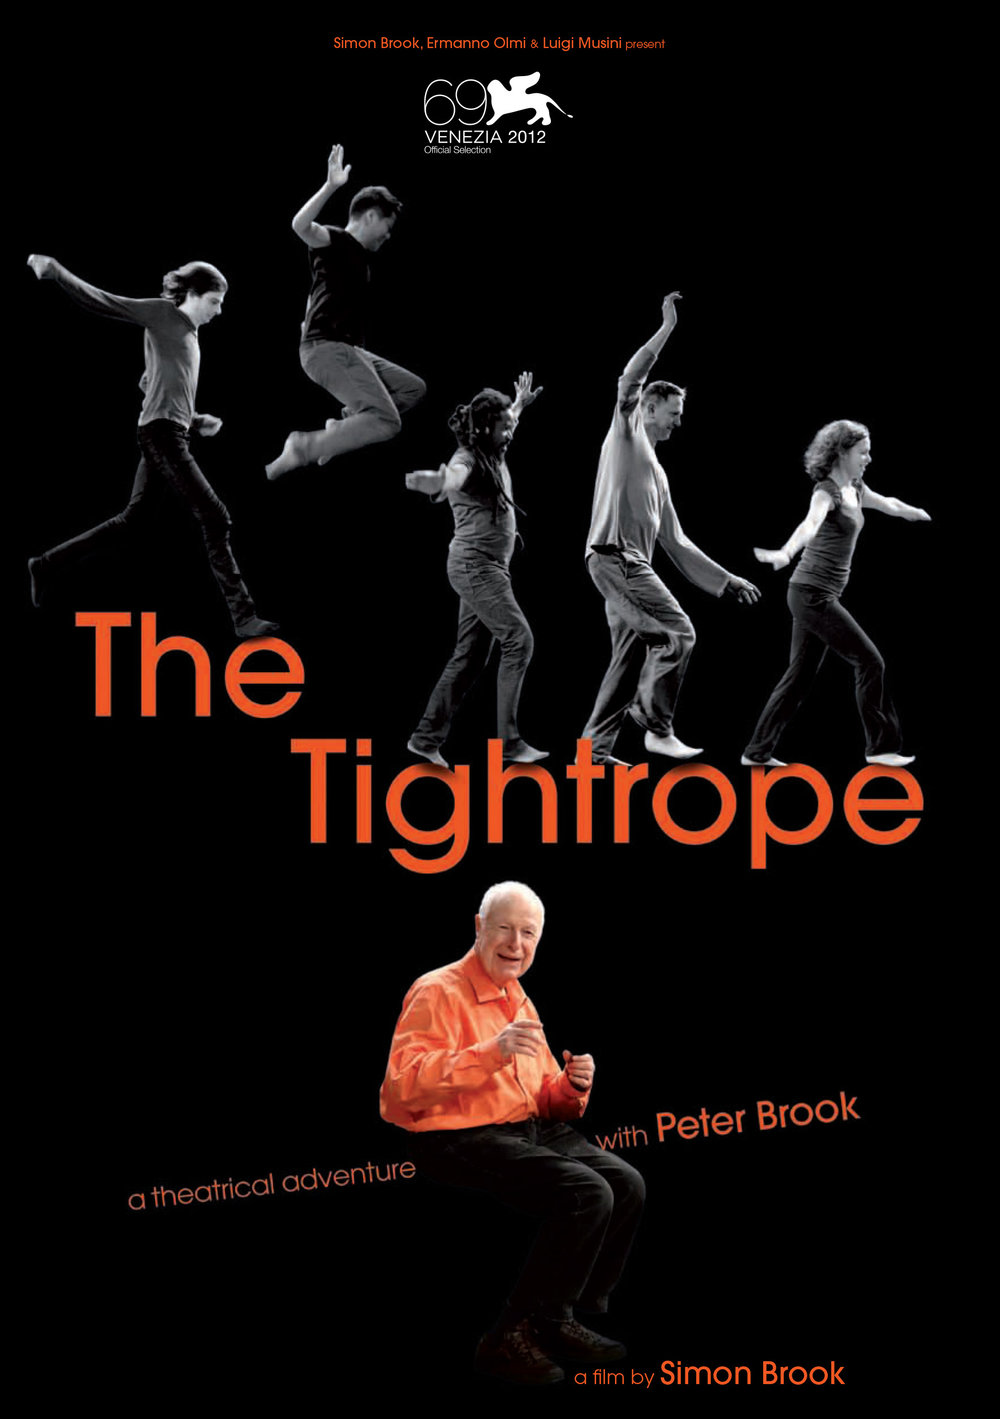 Peter Brook - The Tightrope,a film by Simon Brook